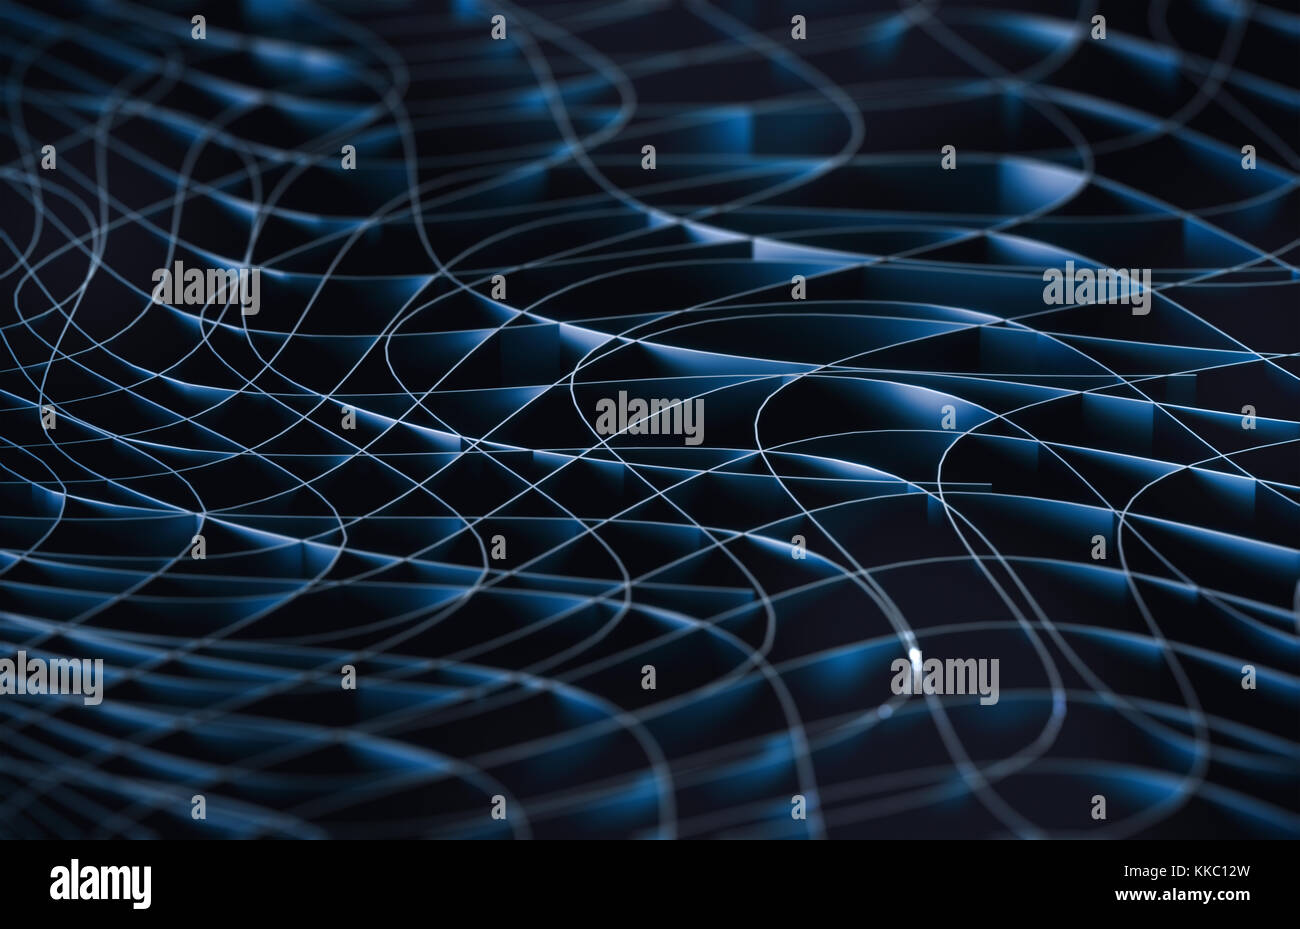 3D illustration. Abstract background, connection and lines of technology. - Stock Image